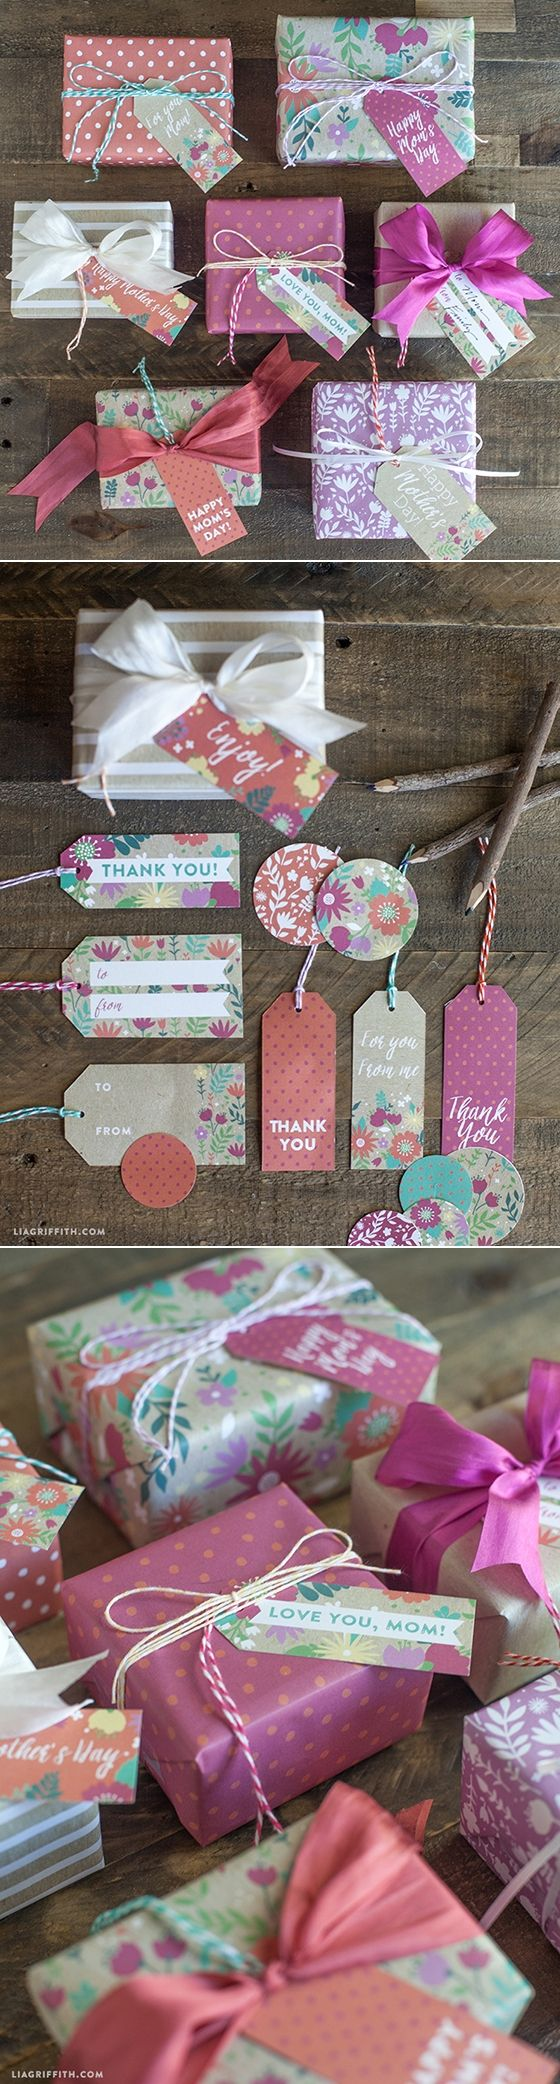 #mothersday #giftwrap #gifttags #printable at www.LiaGriffith.com